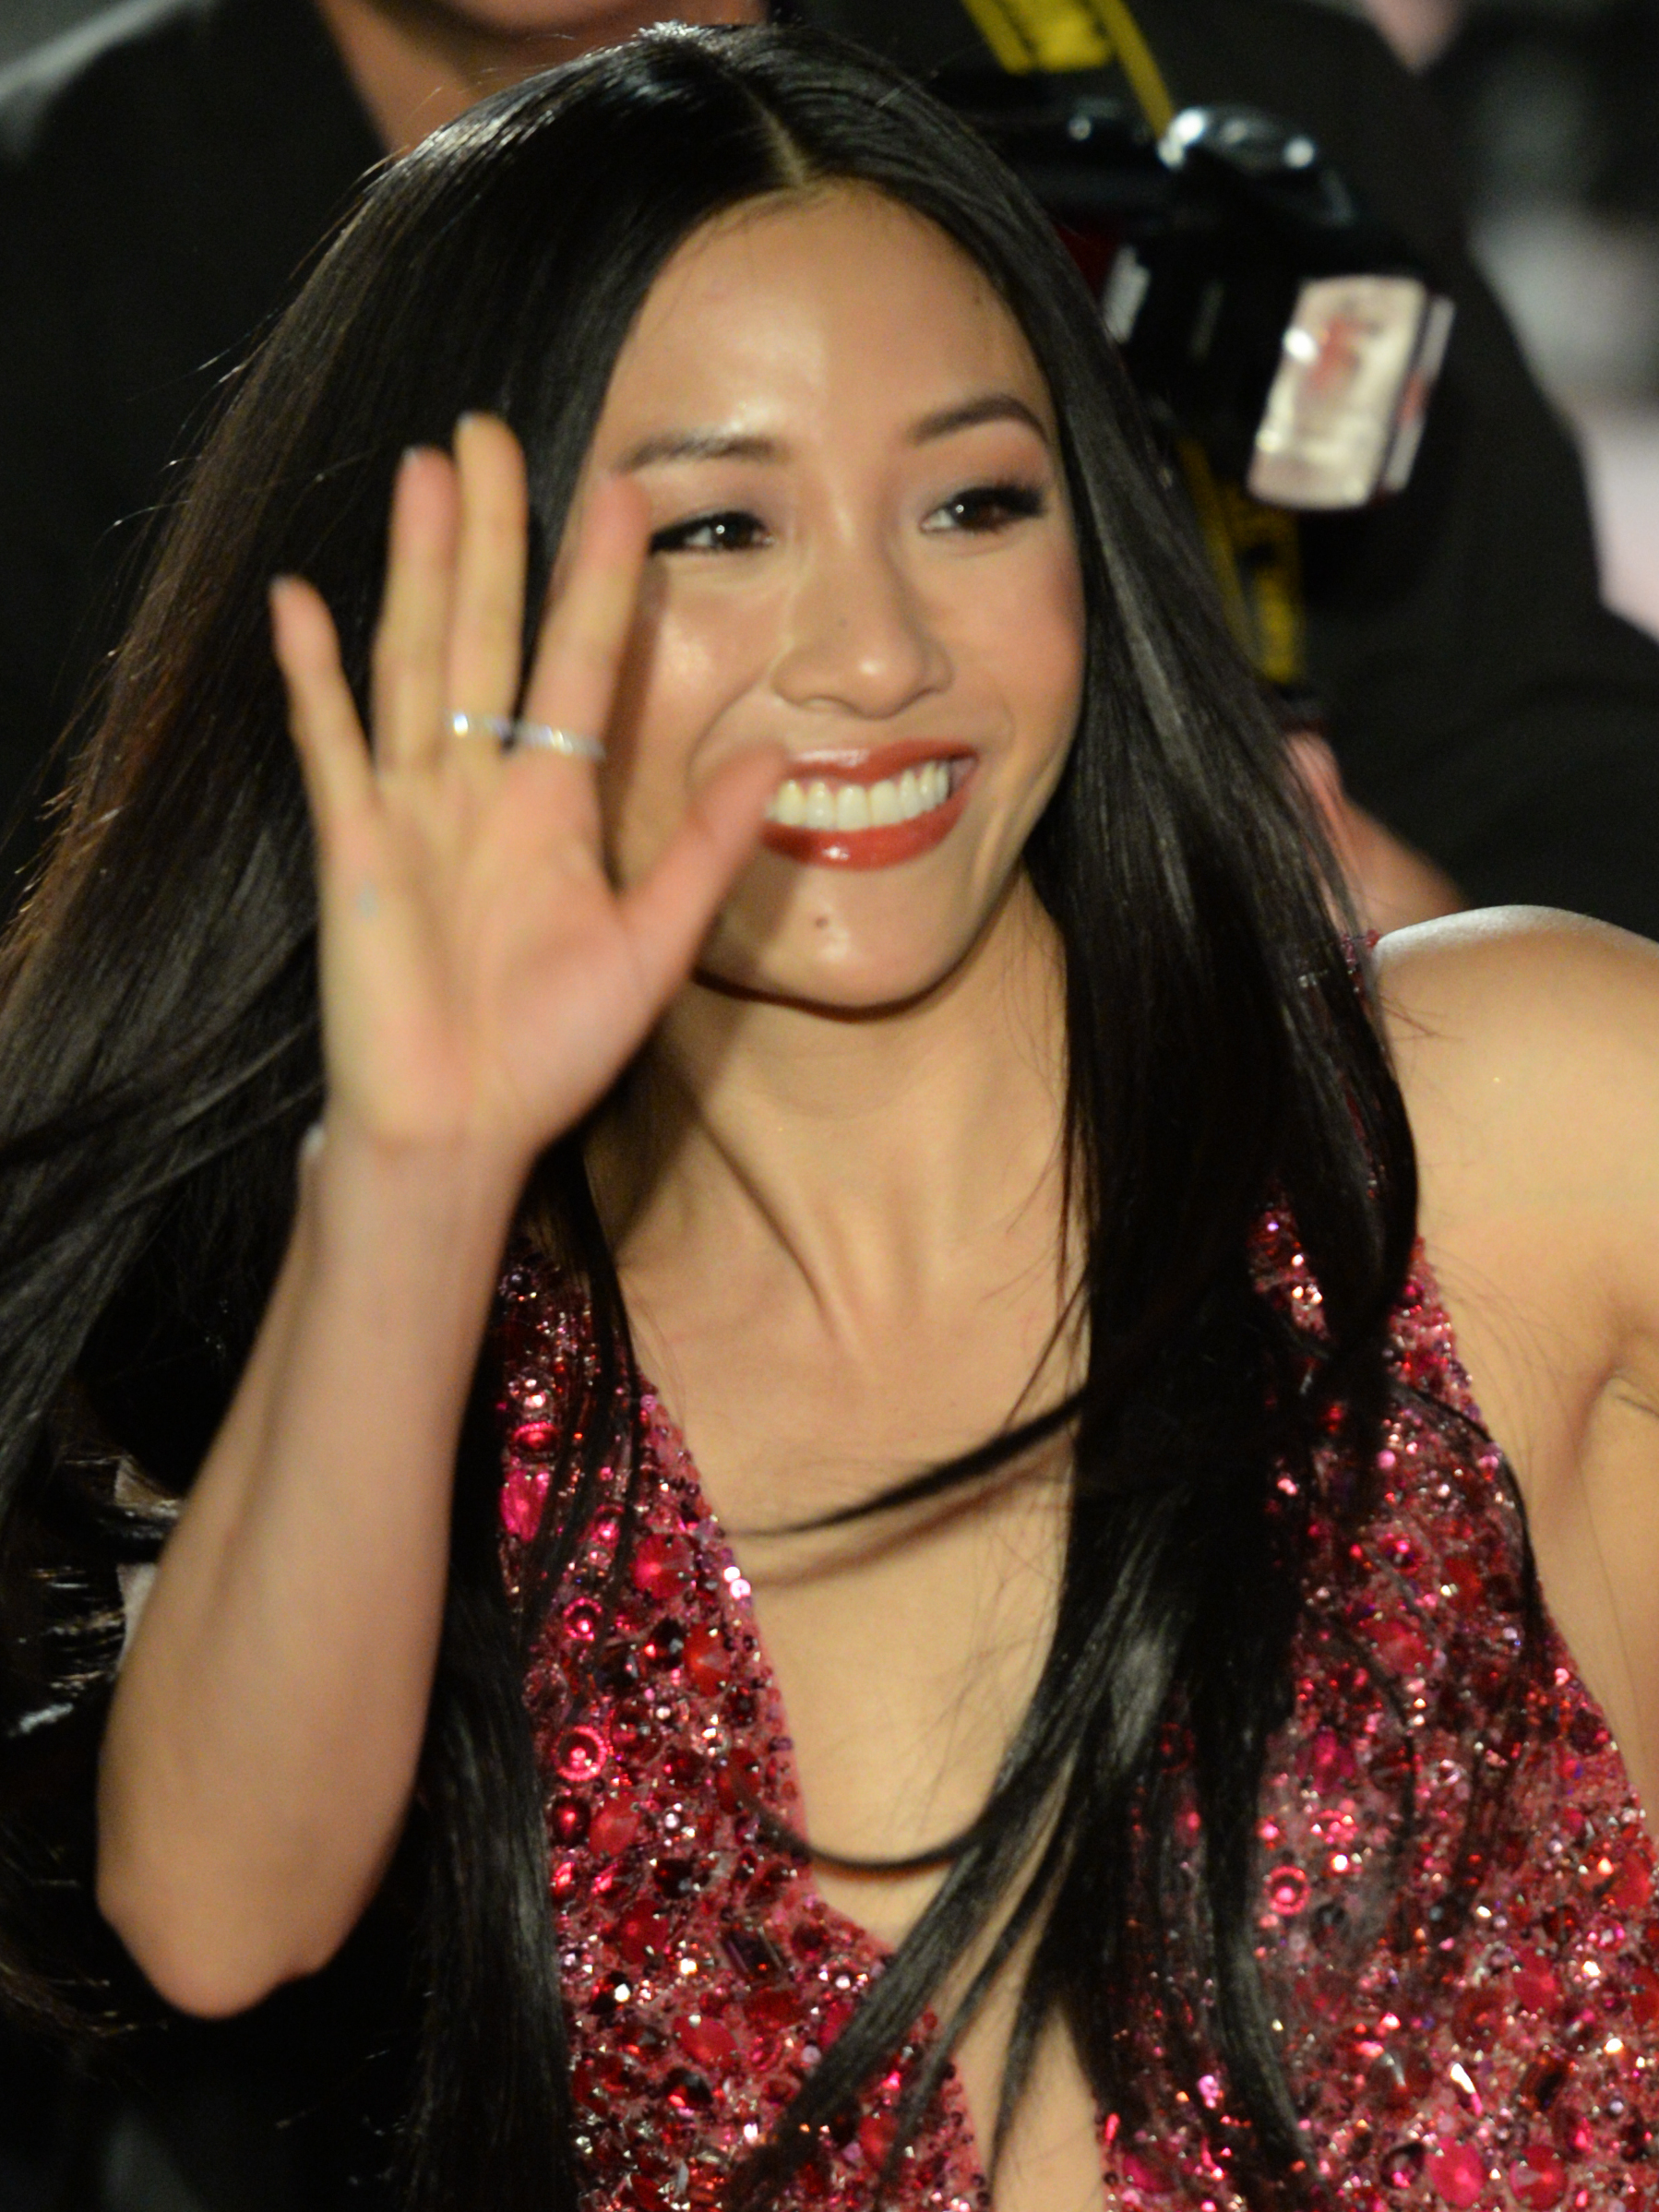 70 Best Constance Wu images in 2020 | Constance wu